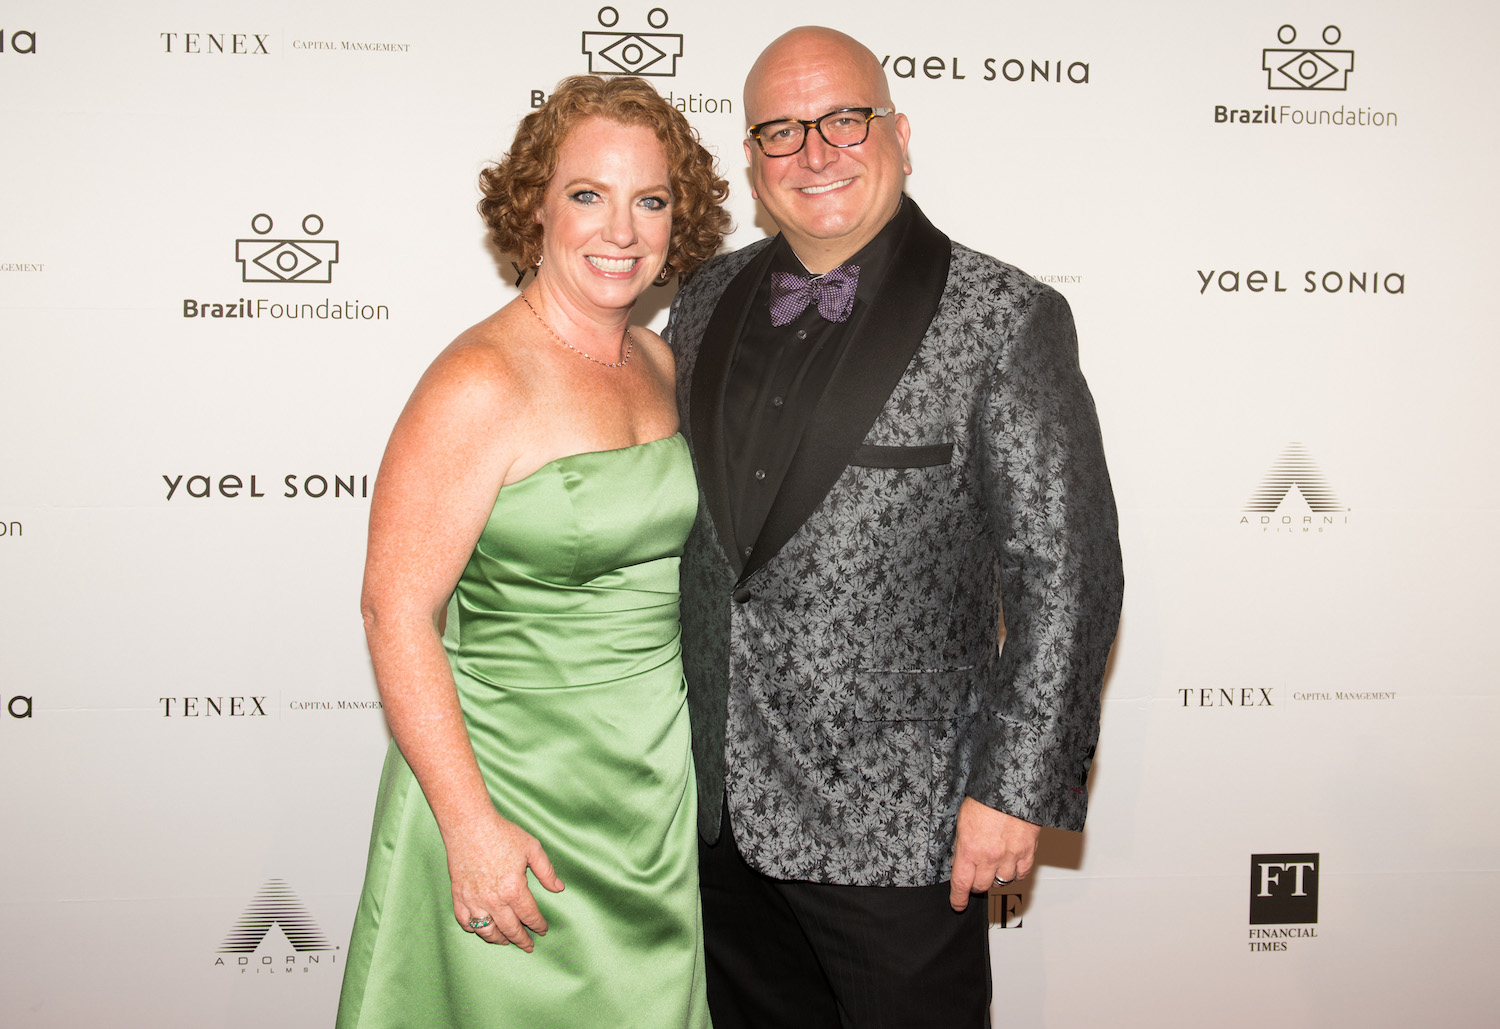 Alyson & Will Landers BrazilFoundation XVI Gala New York Celebrating the Amazon Plaza